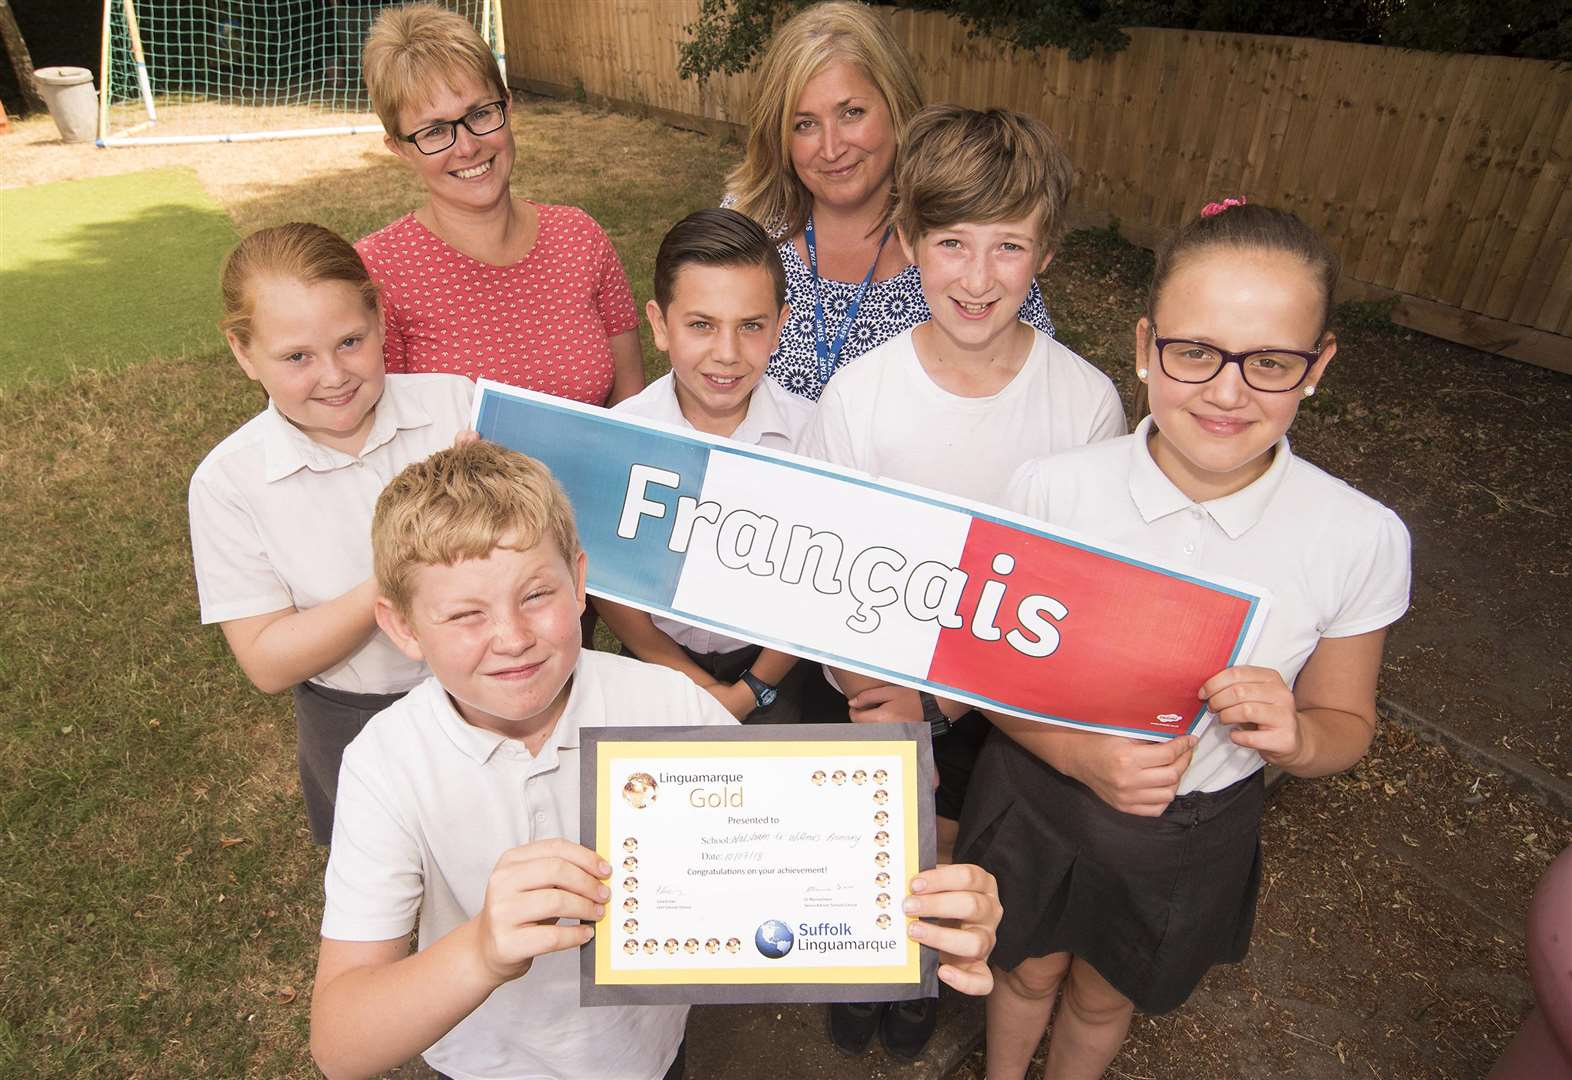 School says 'bonjour' to gold languages award